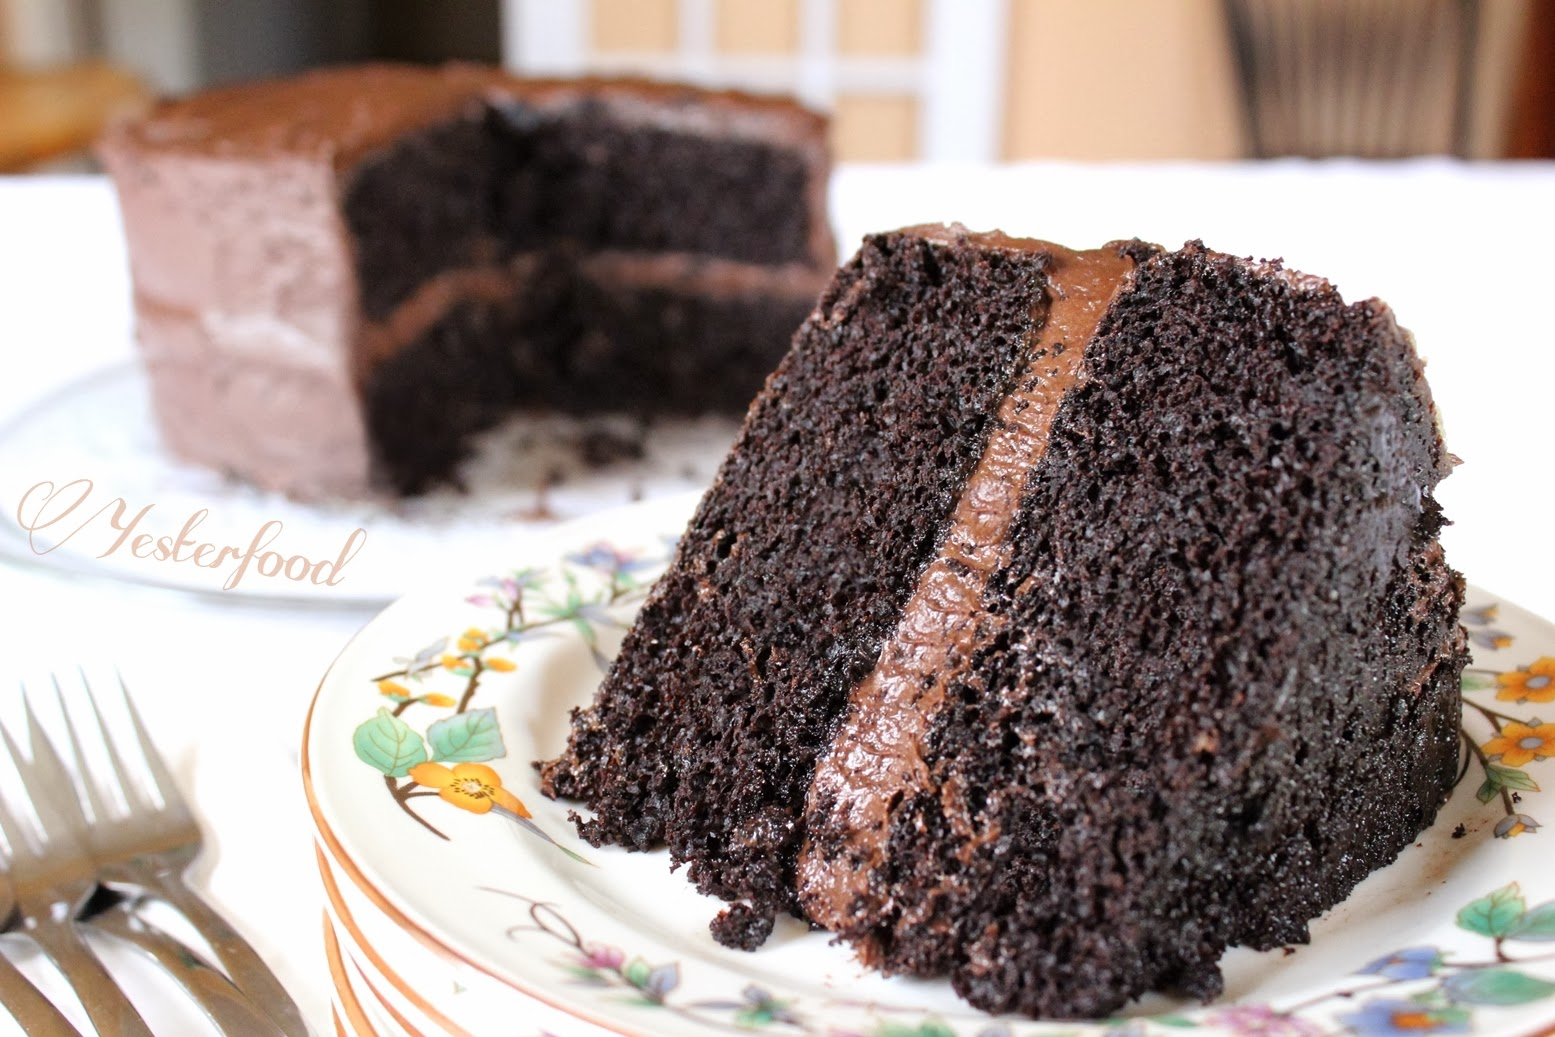 Yesterfood : Rich Chocolate Layer Cake